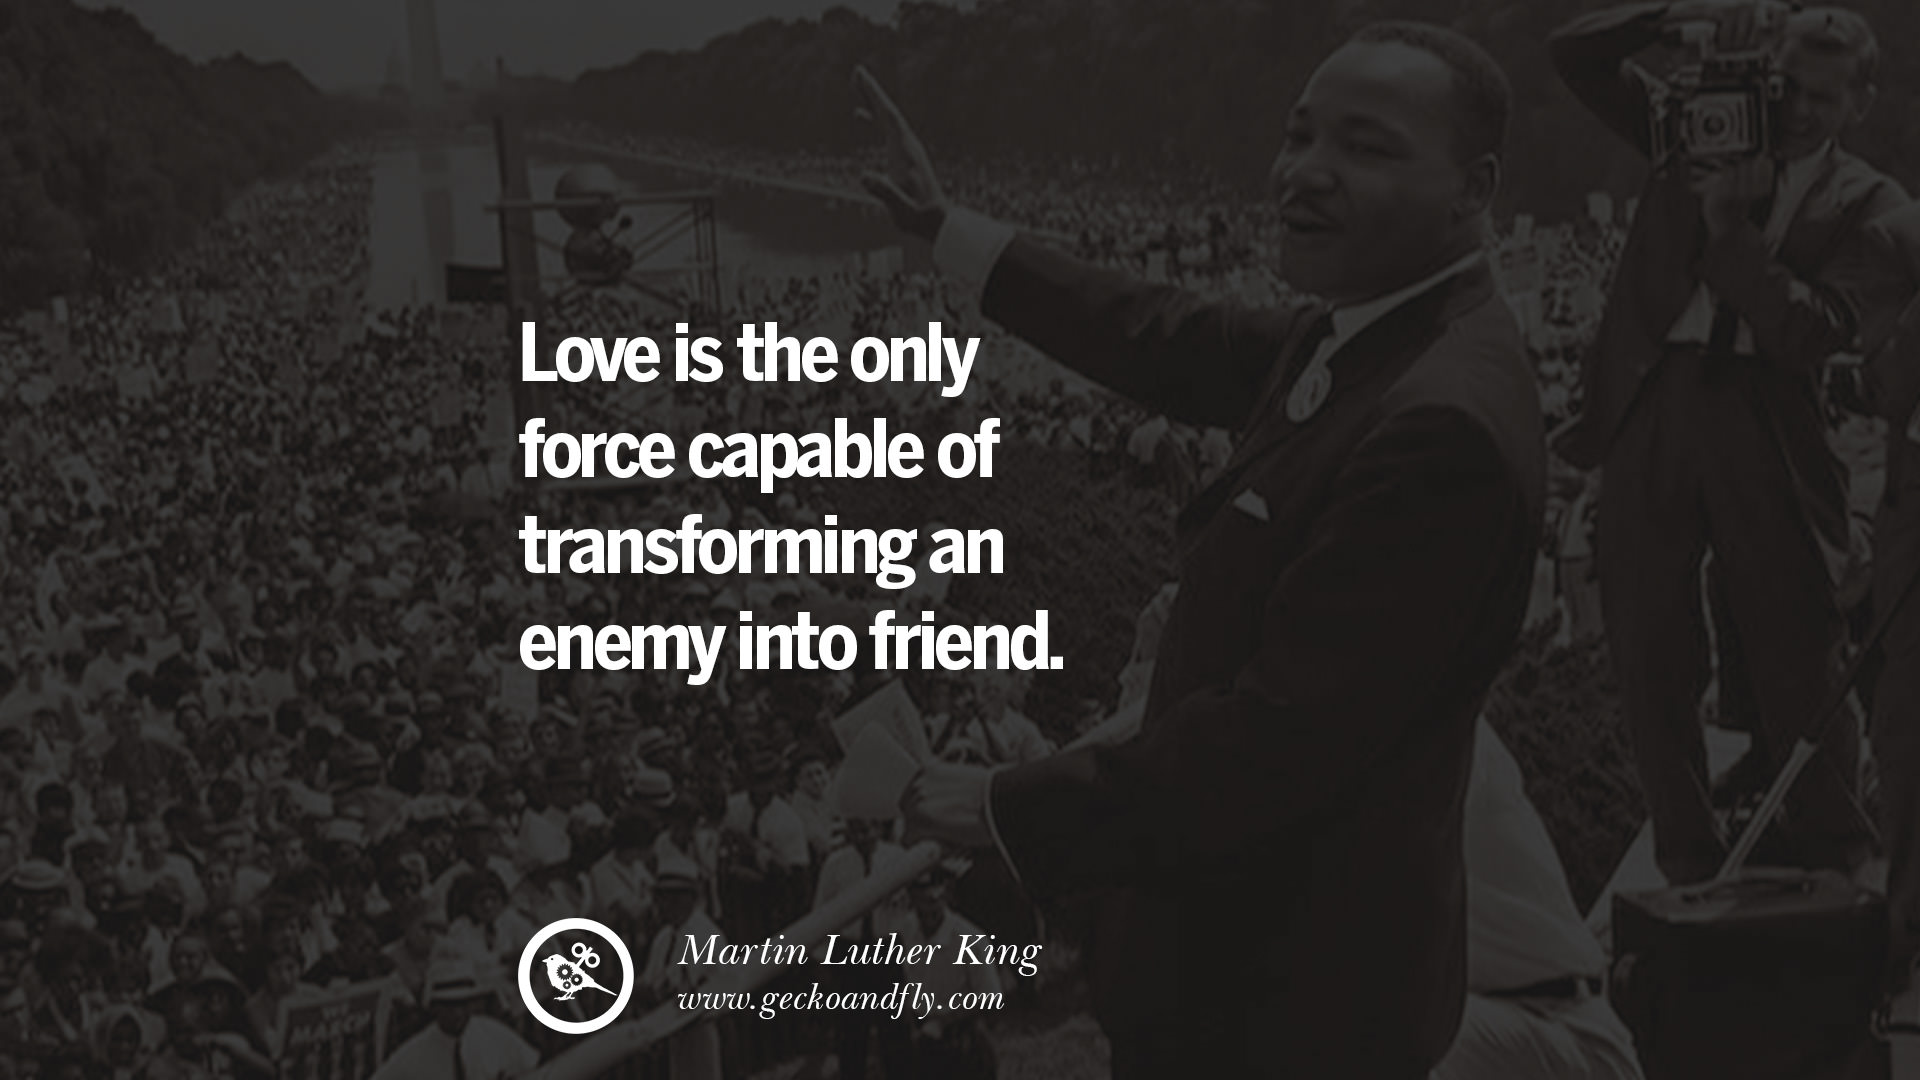 30 Powerful Martin Luther King Jr Quotes On Equality Rights, Black Lives  Matter And More